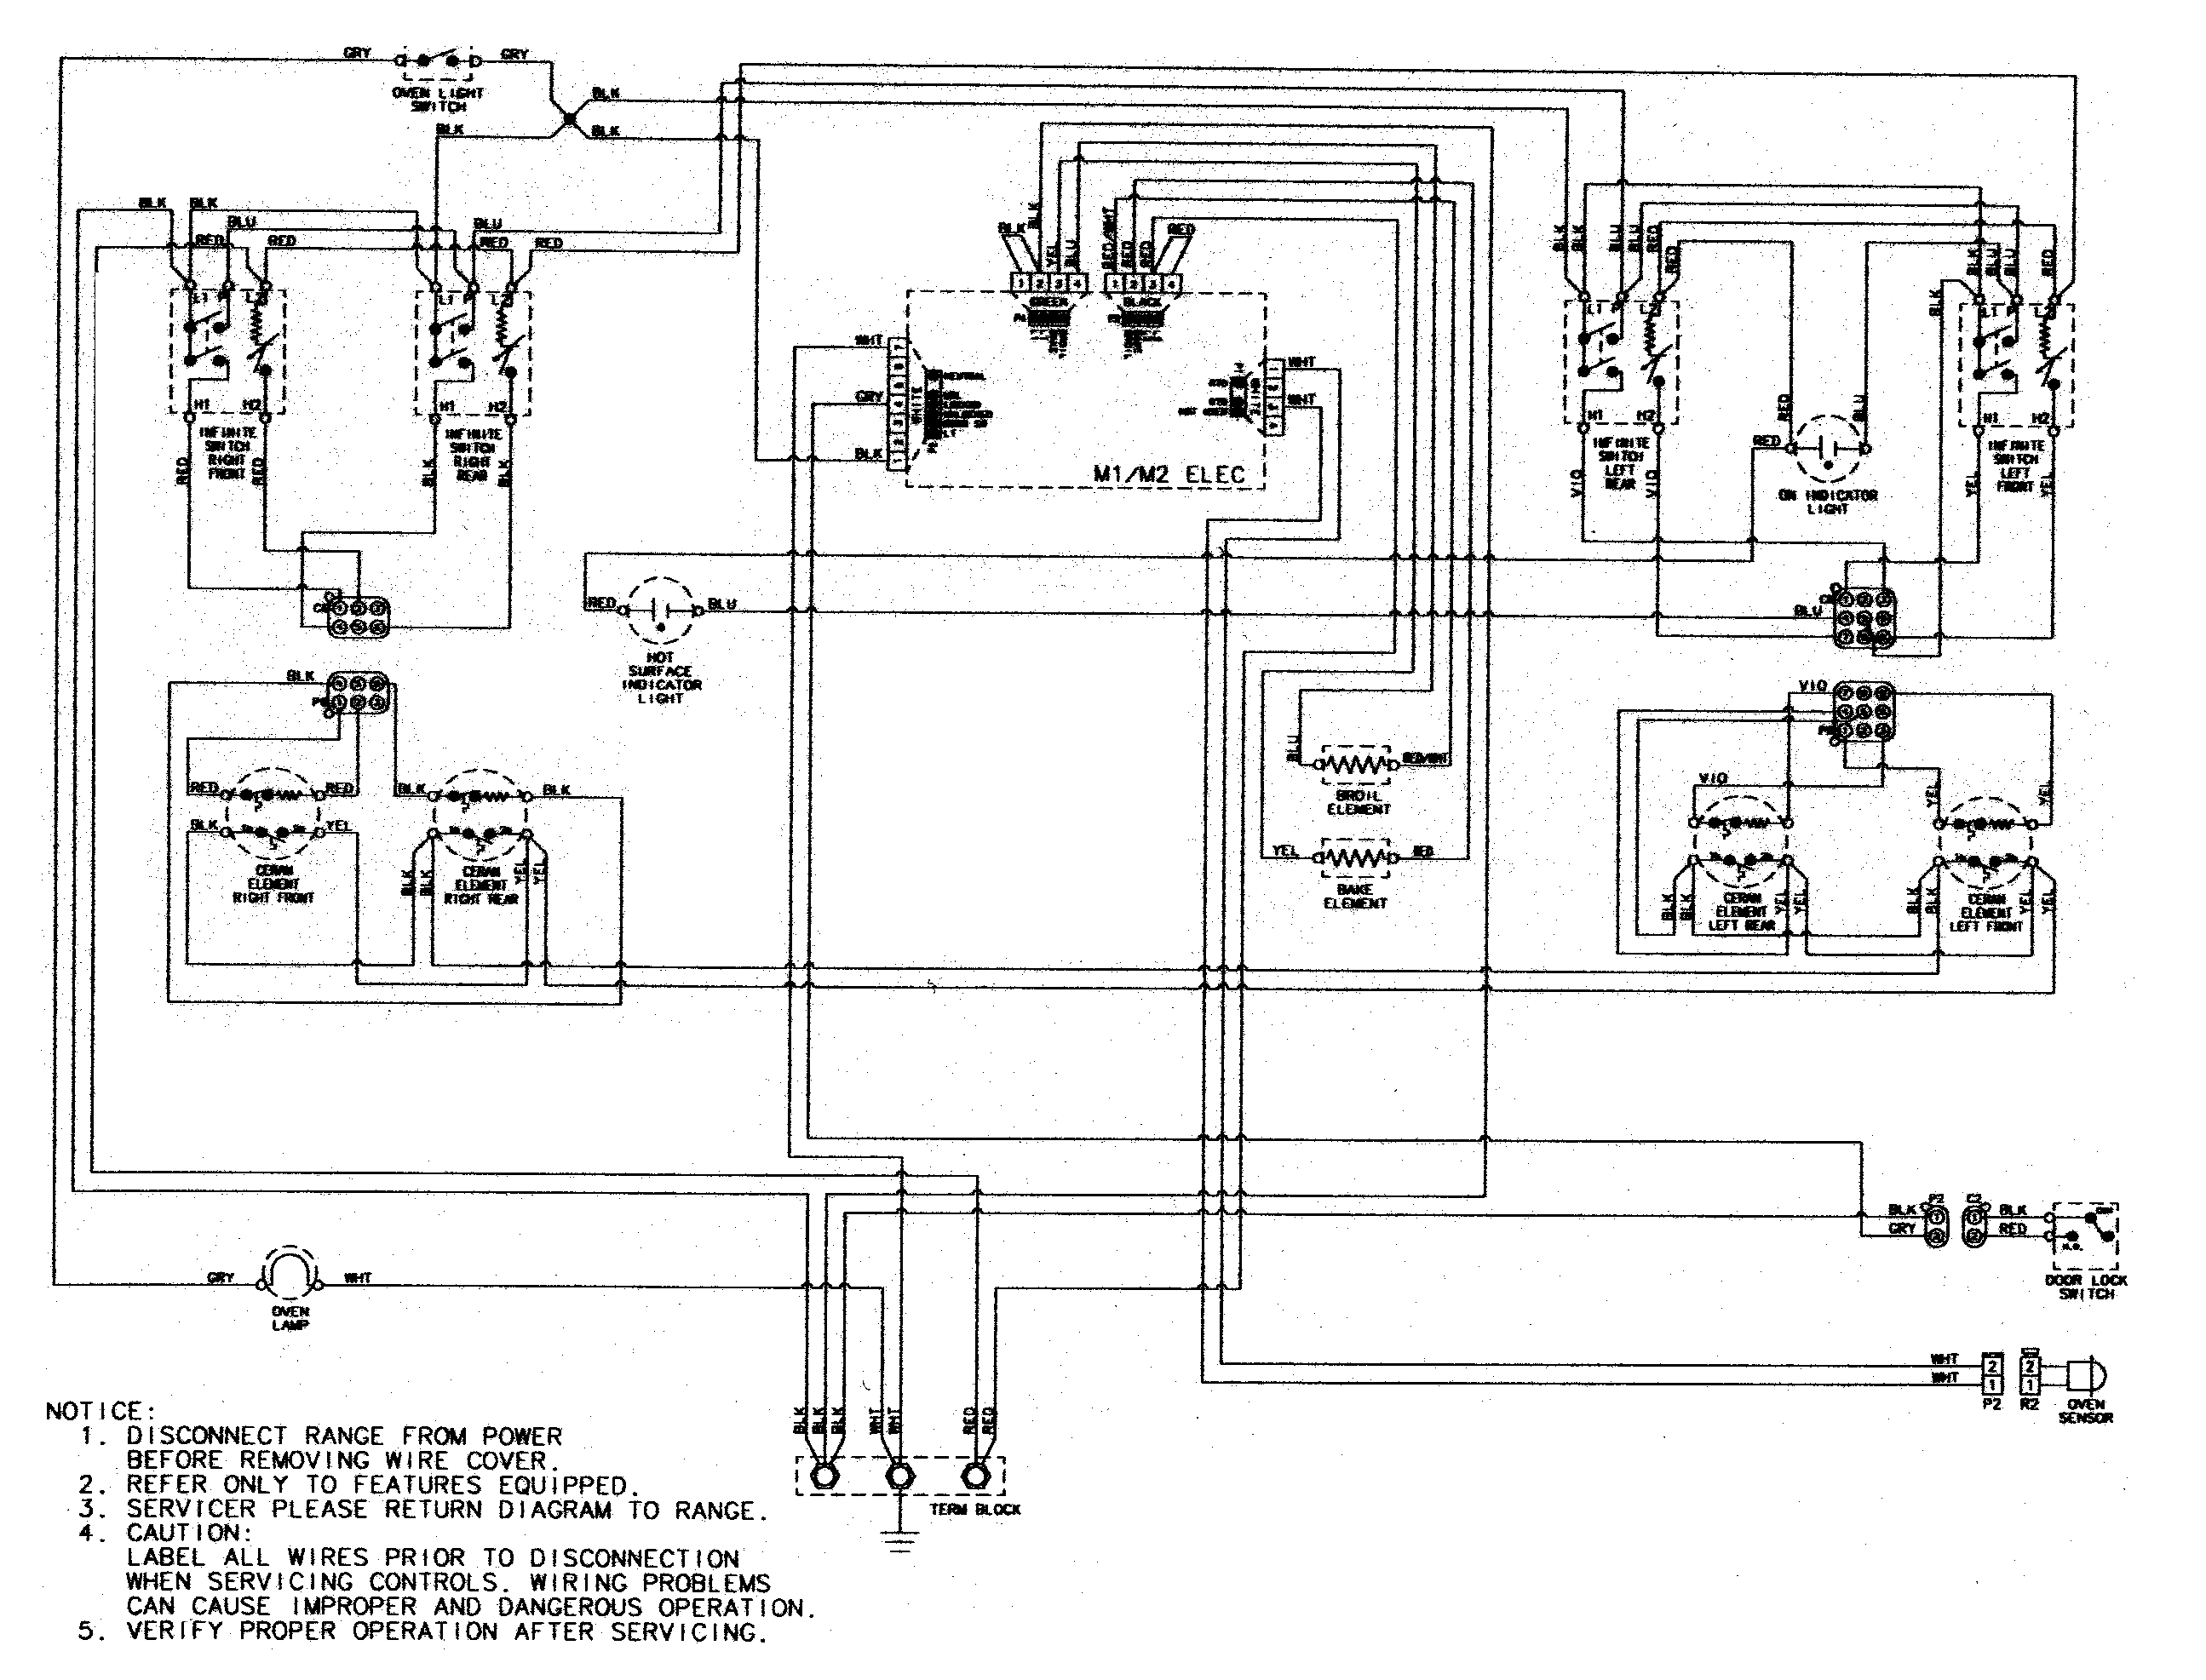 blower motor wiring diagram in addition dayton motor wiring diagram